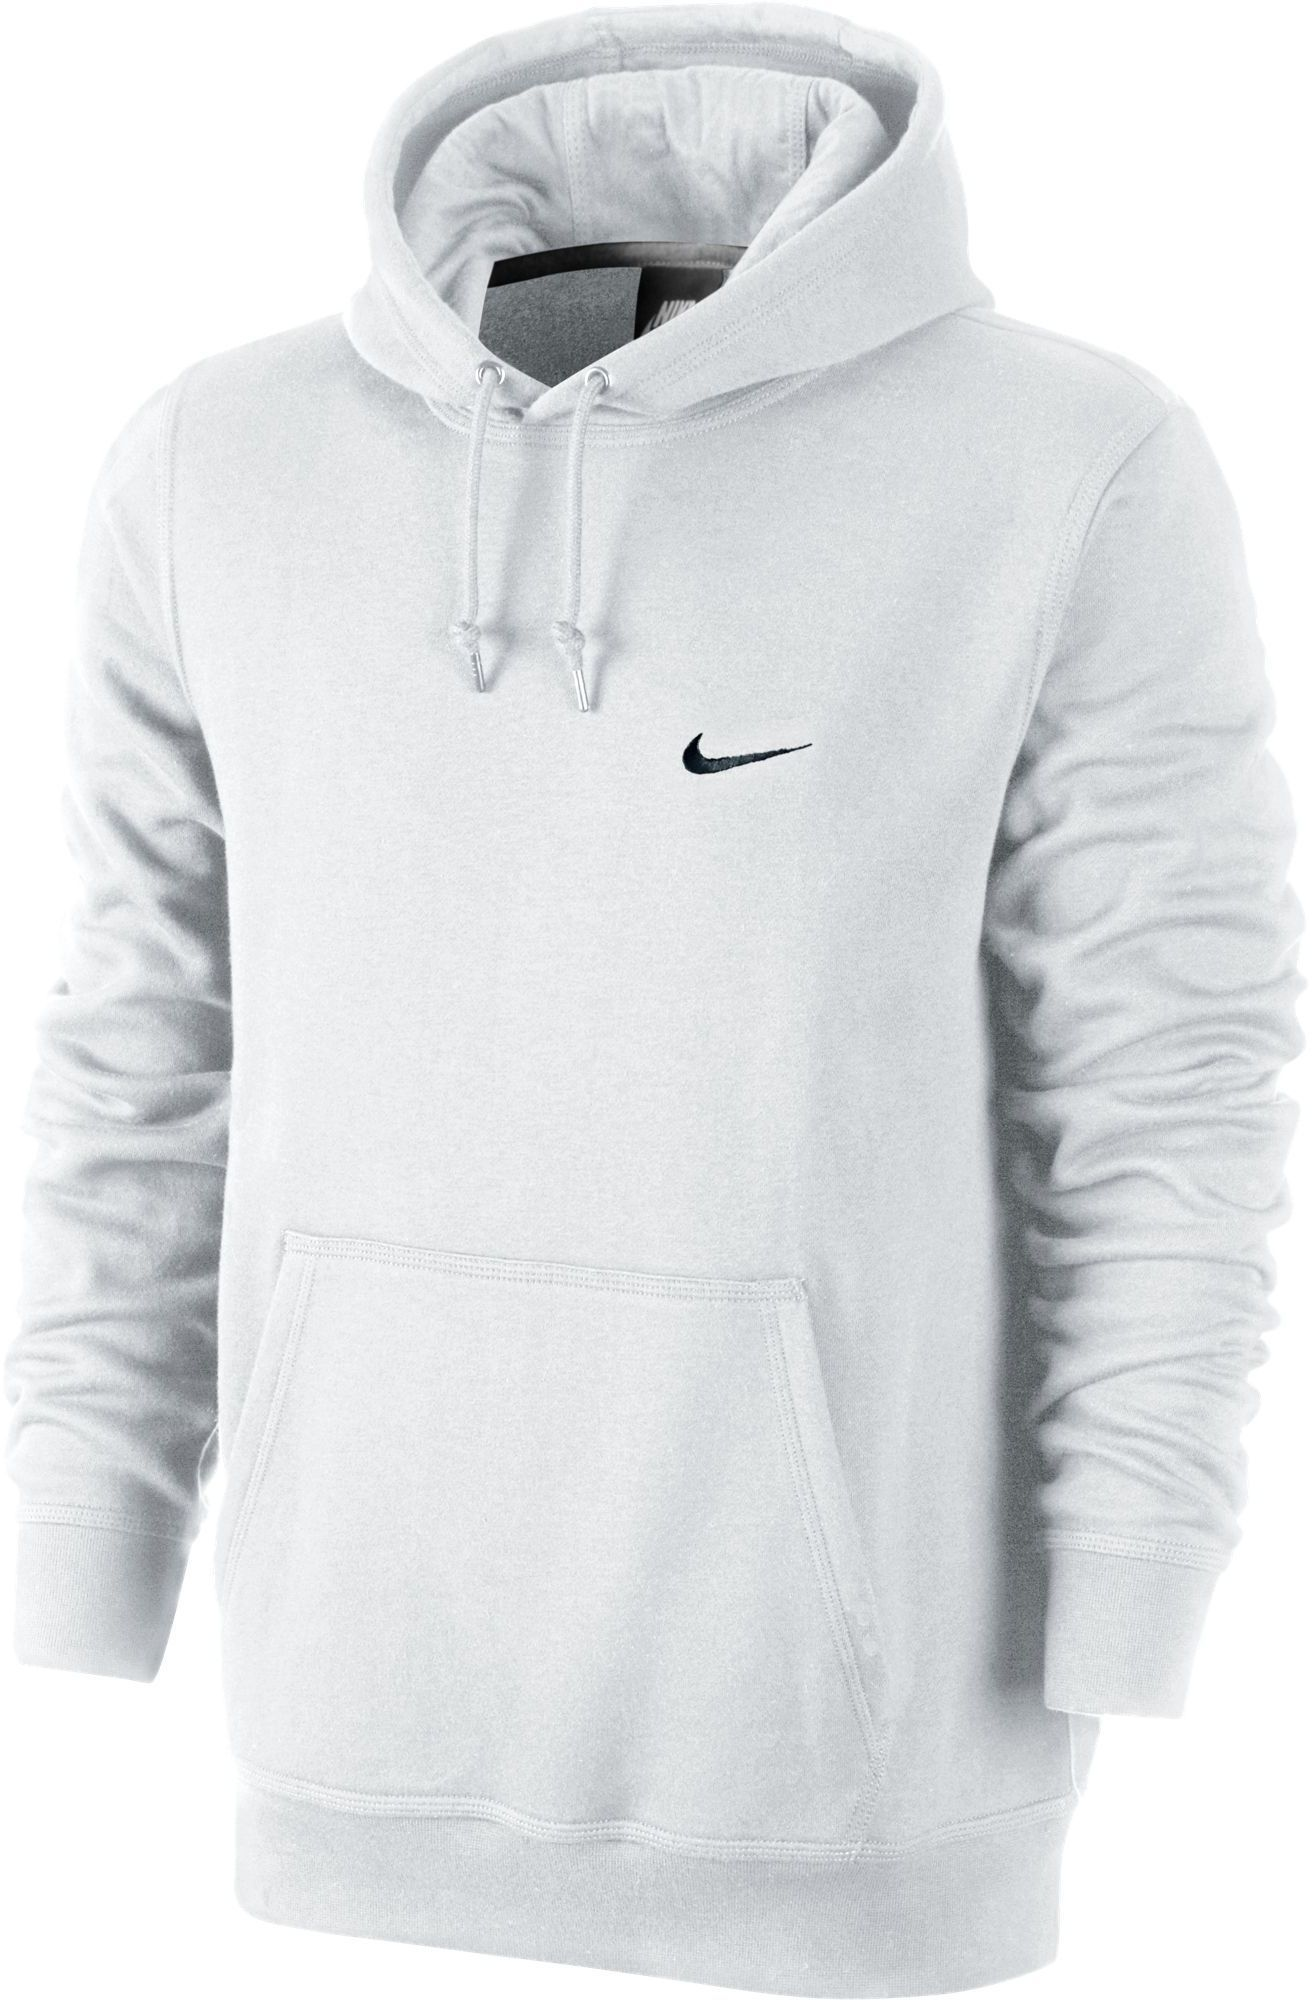 384f9906cfd Nike Men s Classic Club Fleece Hoodie in 2019